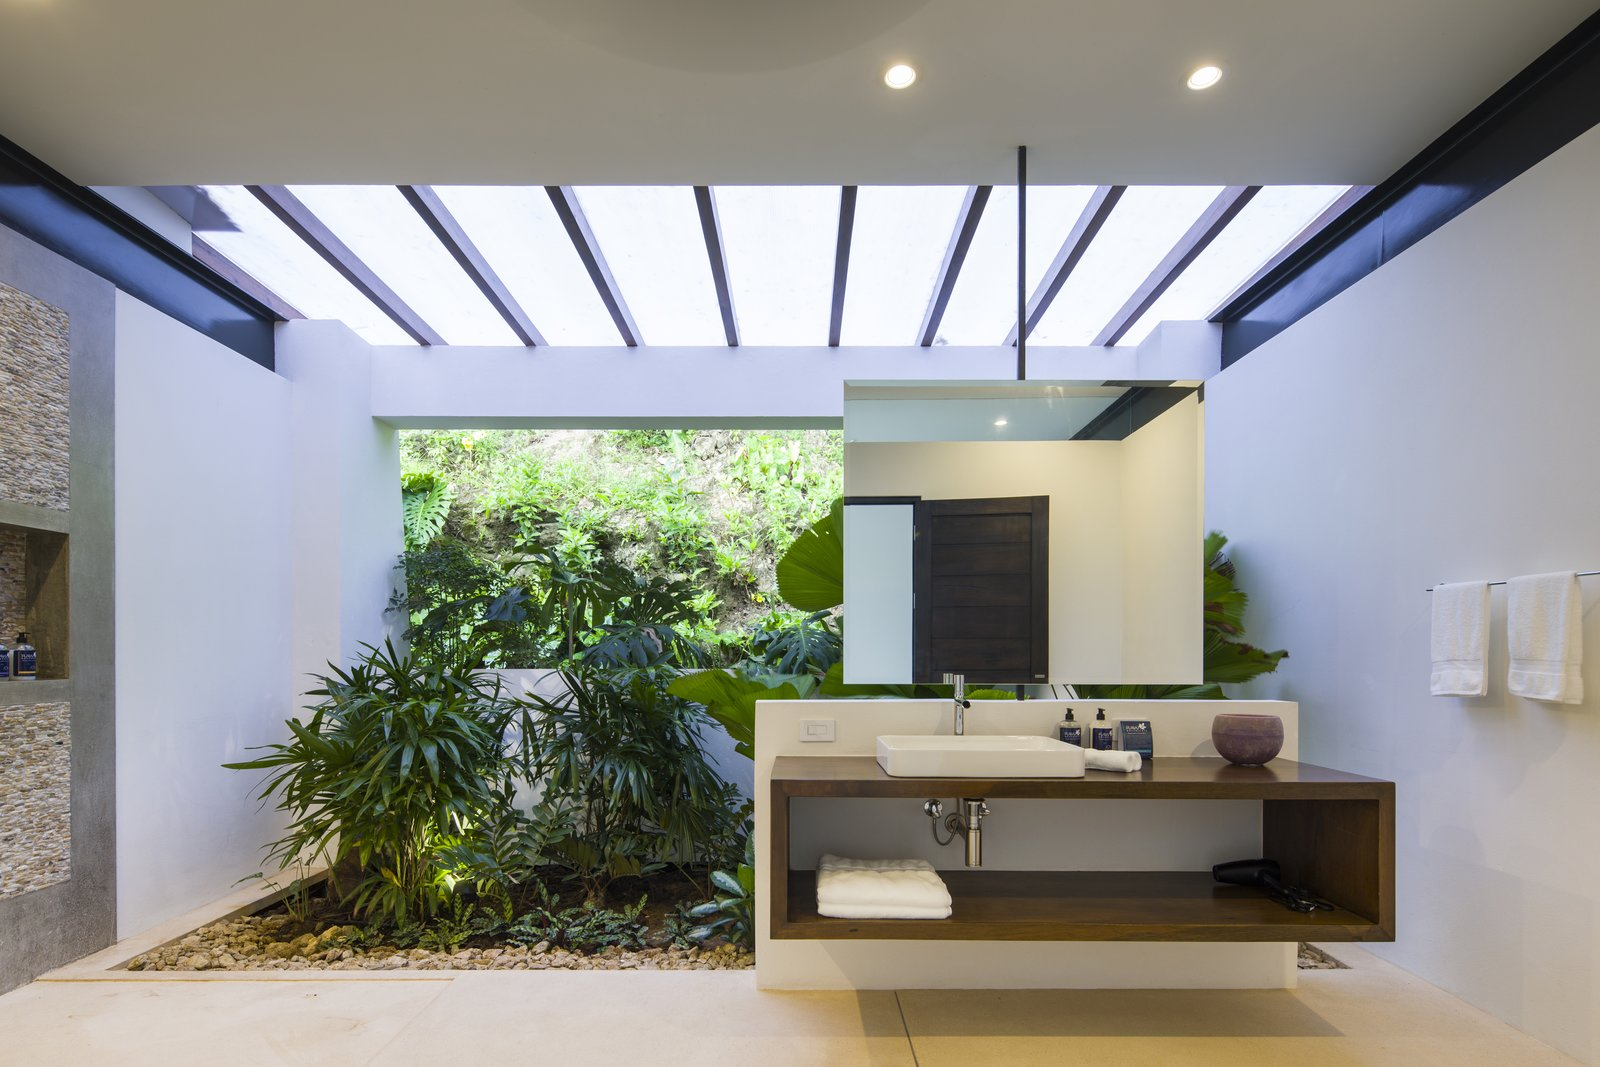 Bath, Wall Mount, Wood, Slate, Vessel, and Recessed The bathroom integrates a sense of the outdoors.  Dwell's Favorite Bath Recessed Photos from Slip Away to These Sleek New Villas in a Costa Rican Forest